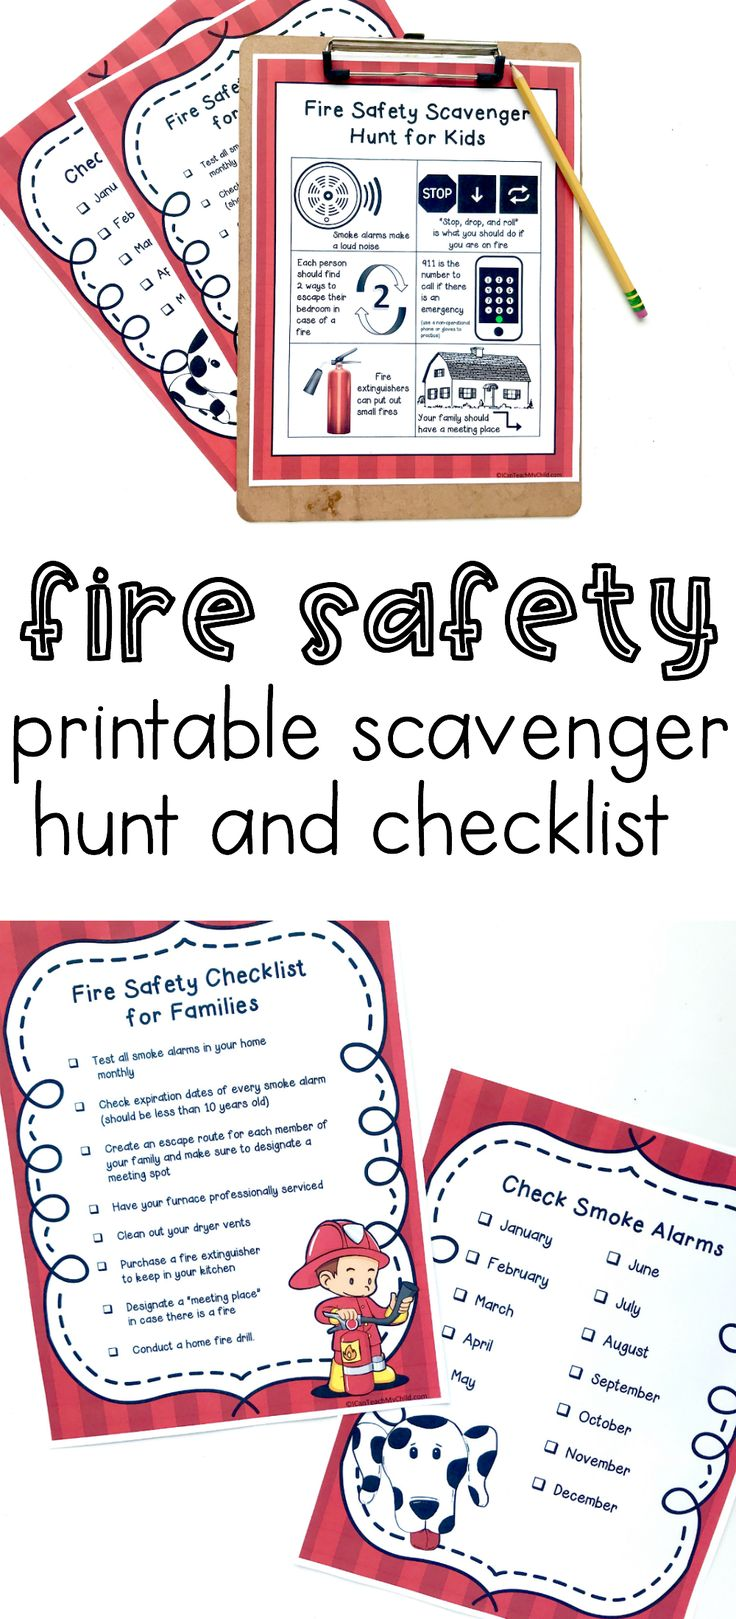 Fire Safety Checklist And Scavenger Hunt I Can Teach My Child Fire Safety Preschool Fire Prevention Week Fire Safety For Kids [ 1619 x 736 Pixel ]